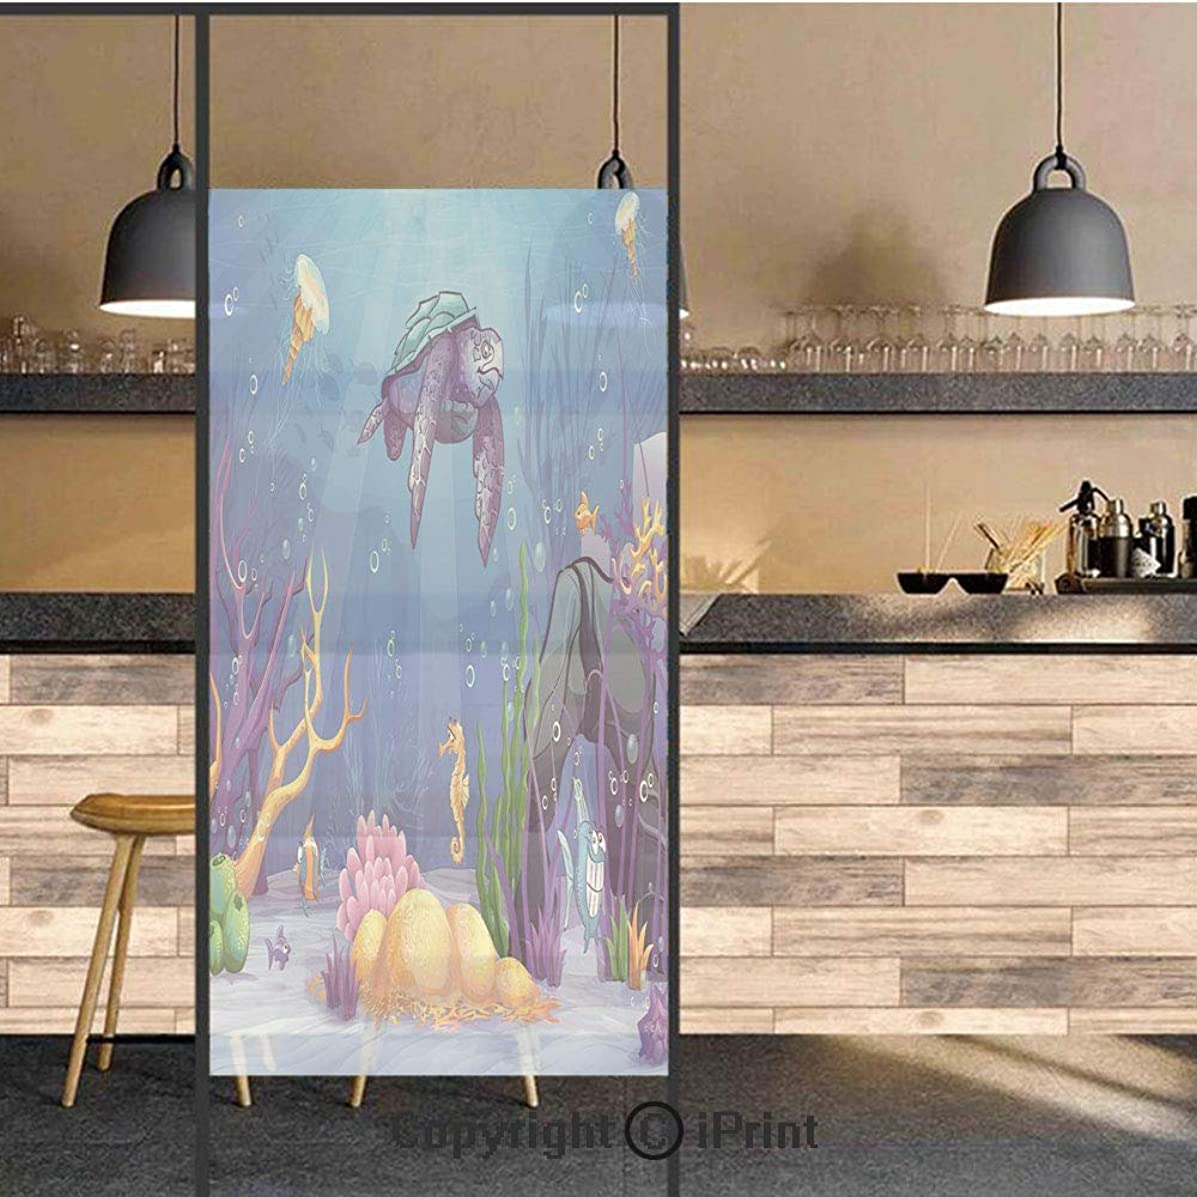 3D Decorative Privacy Window Films,Underwater World Cartoon Style Illustration Funny Fish Jellyfish Sea Horse,No-Glue Self Static Cling Glass film for Home Bedroom Bathroom Kitchen Office 17.5x71 Inch